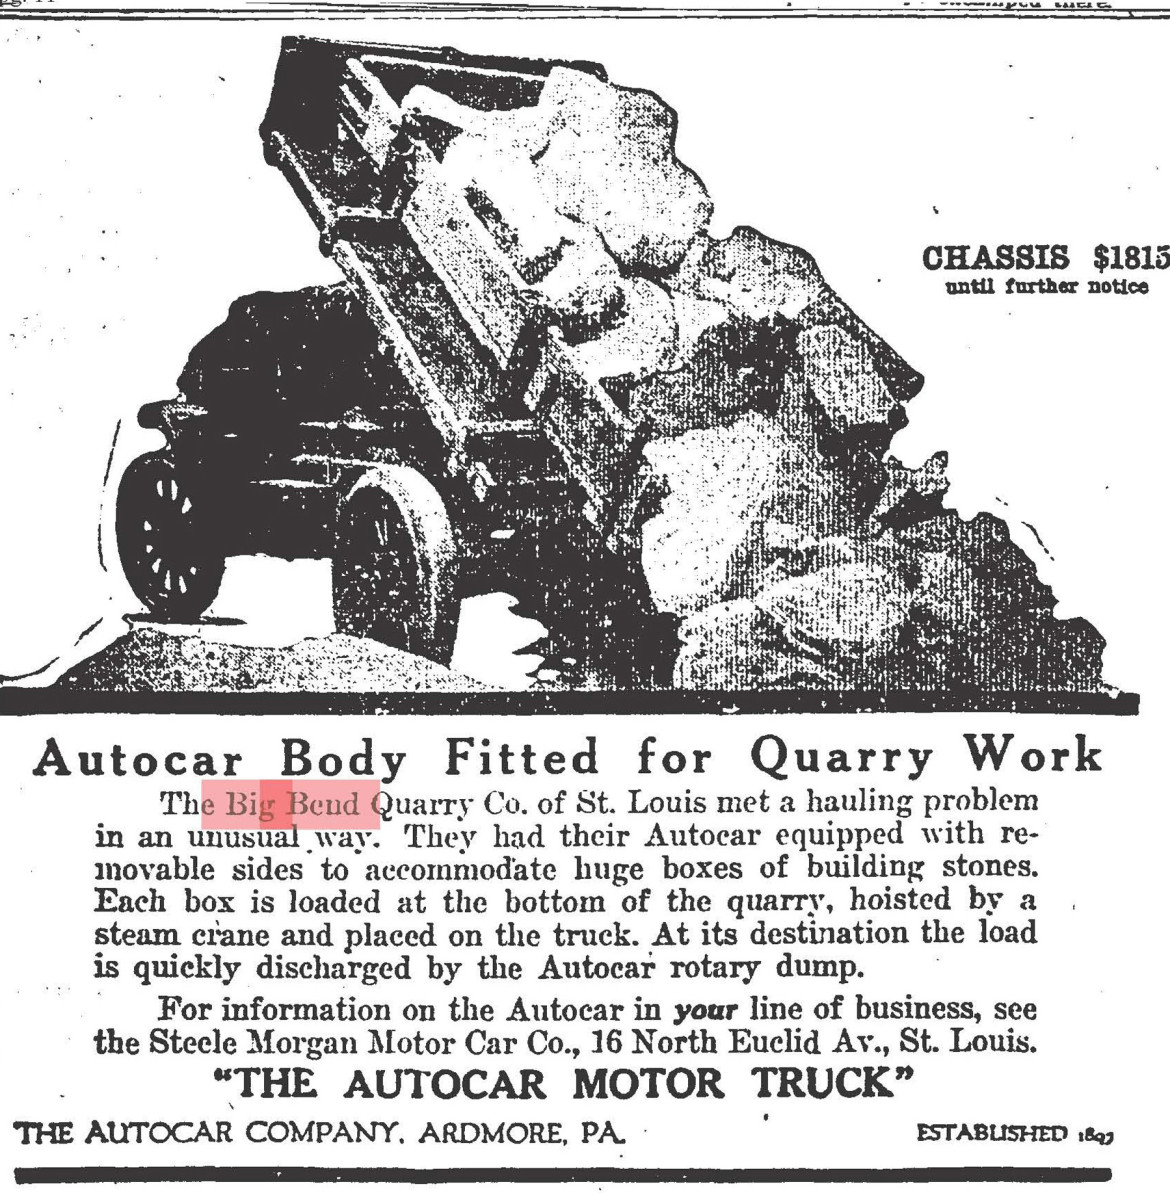 This advertisement appeared in the St. Louis Post-Dispatch in August of 1917.